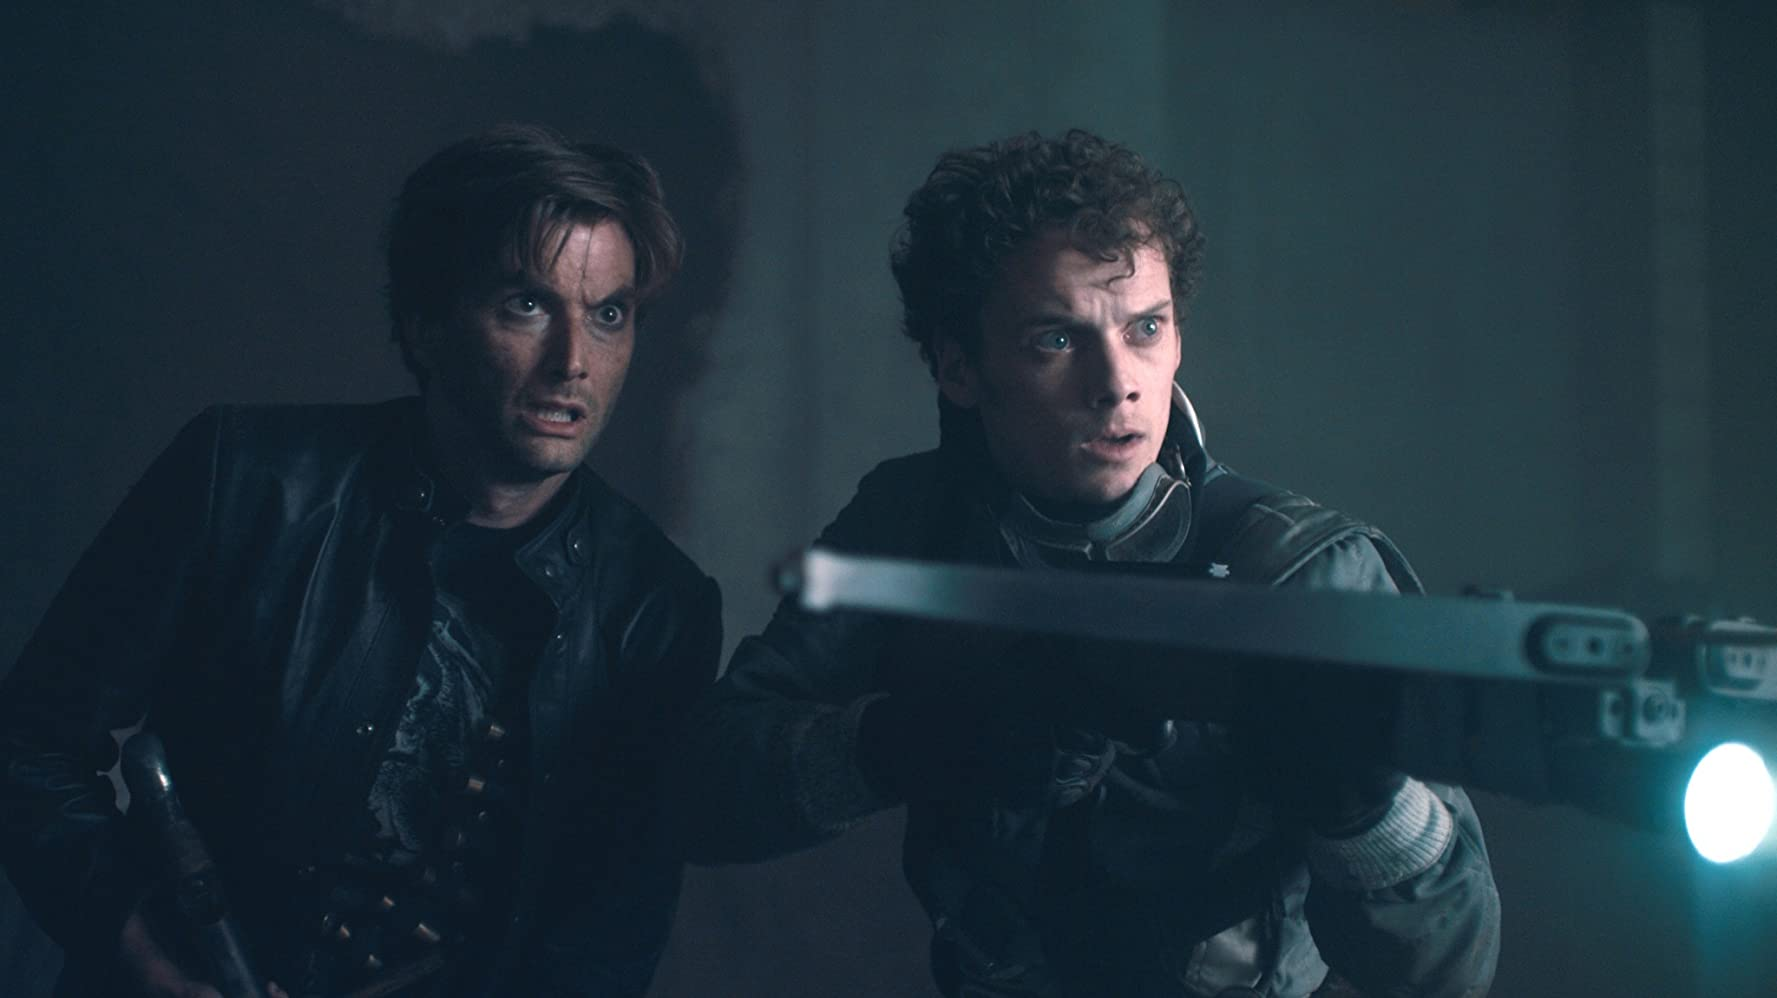 David Tennant and Anton Yelchin in Fright Night (2011)